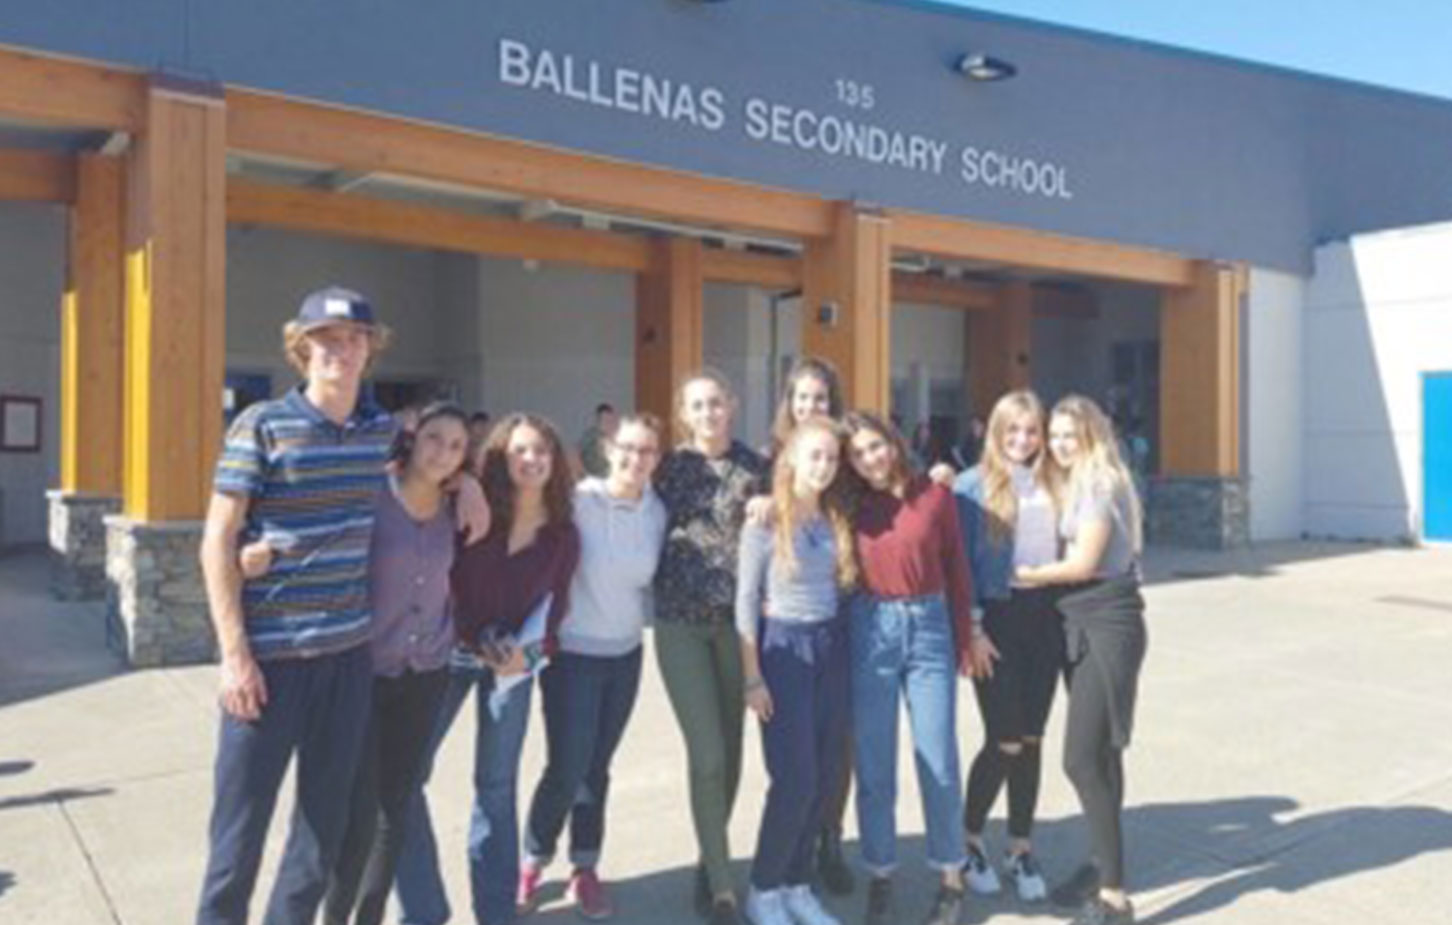 ballenas-secondary-school-teaser-neu